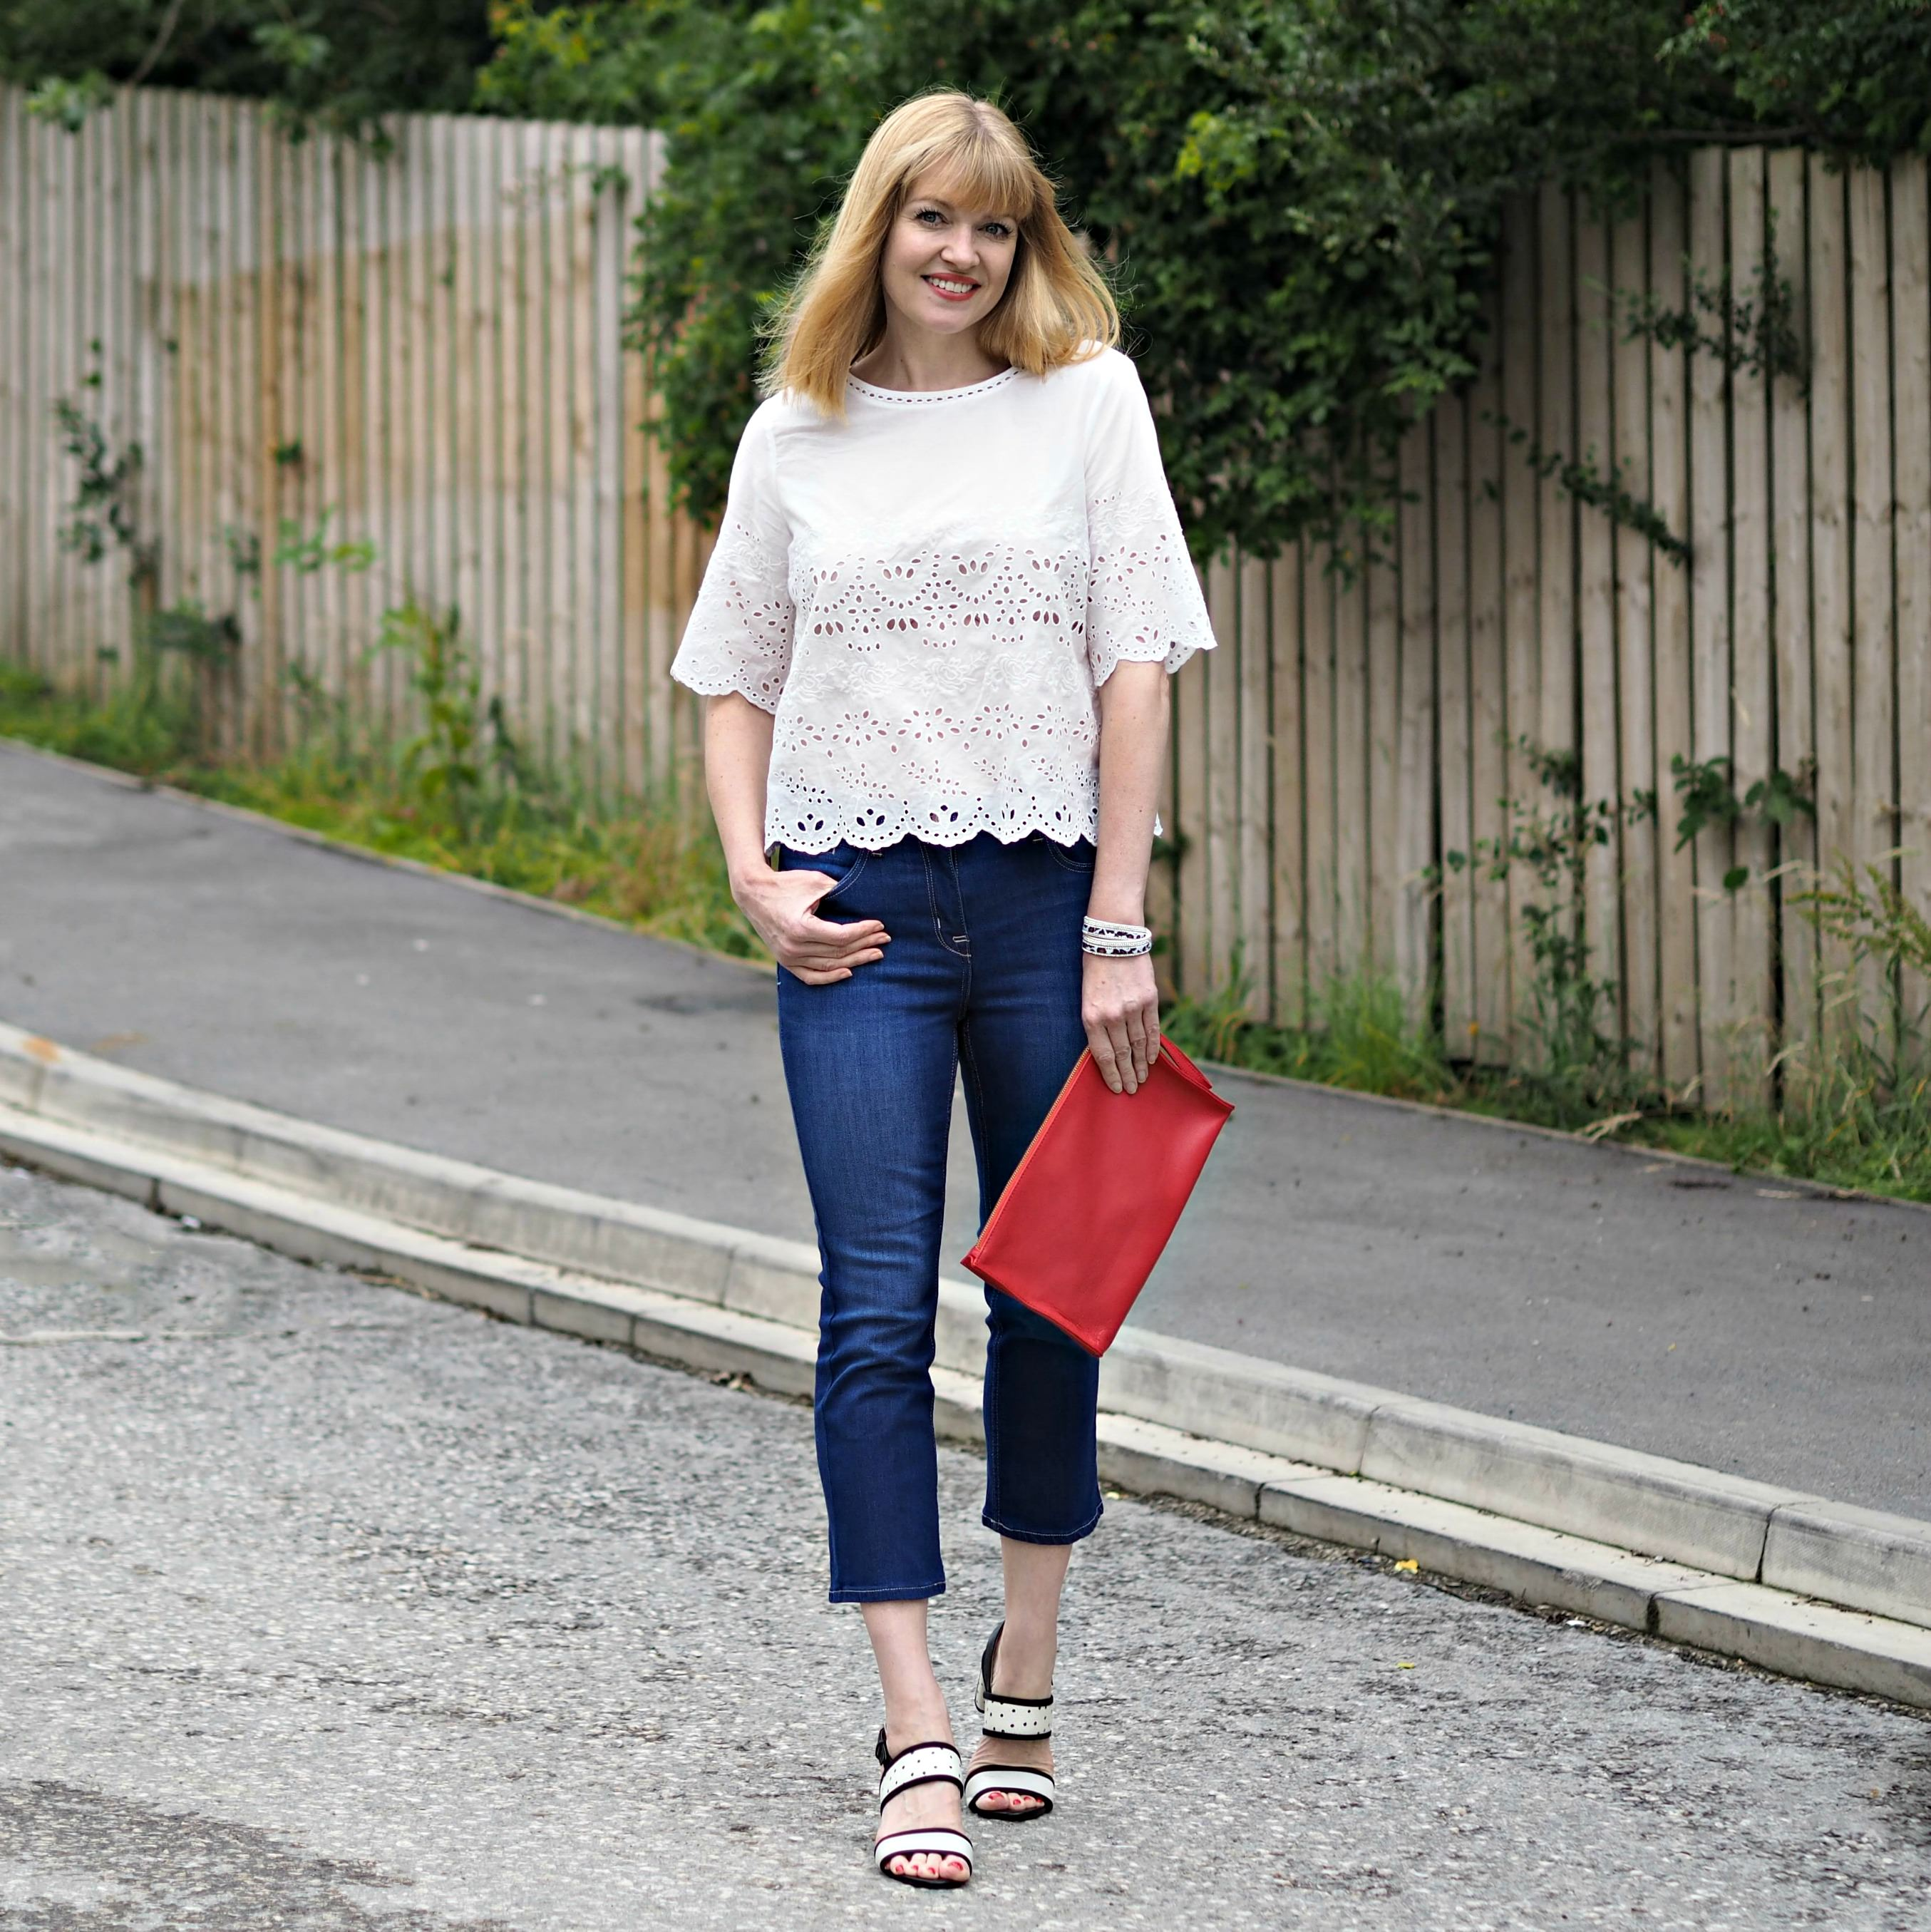 Whatlizzyloves- wearing Marks and Spencer white shirt - The Over 40 Collective White top Challenge